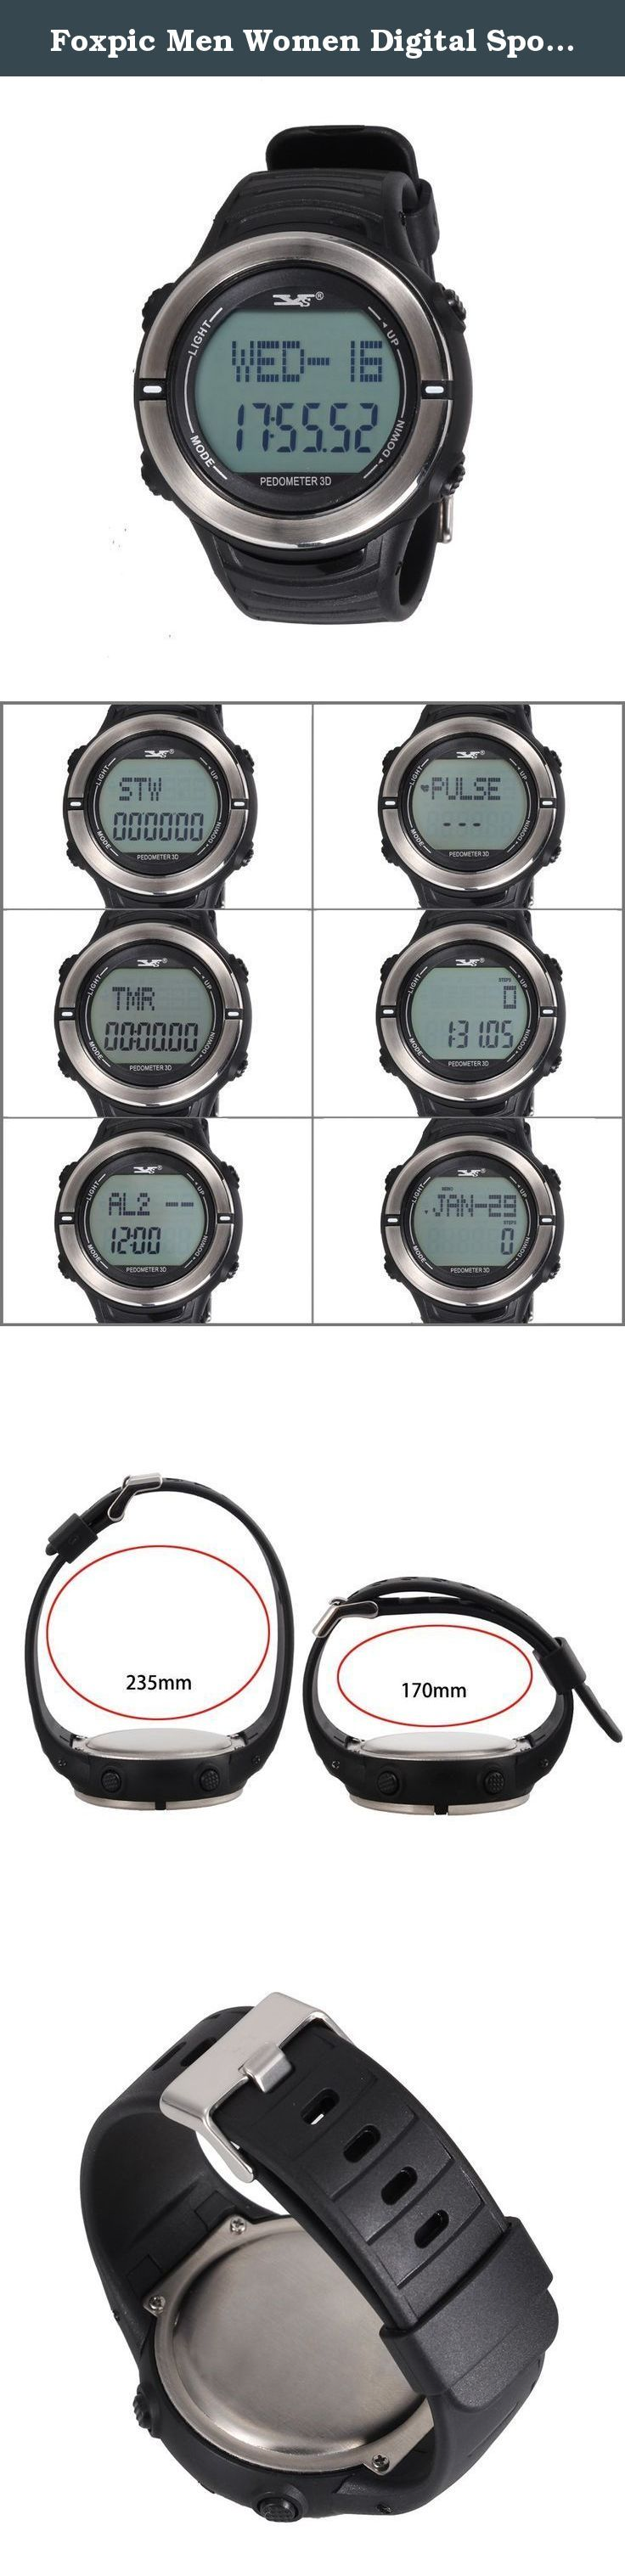 Foxpic Men Women Digital Sports Watch Heart Rate Monitor Multifunction Step Counter Pedometer stopwatch with Calorie Counter Fitness Tracker Running Exercise Timer Black. Specifications: Material: ABS Color: Blak Size: dial diameter 47mm x thick 15mm, strap 28.5cm Weight: 58g Imported 3D sensor, button and the screen is green, strap and the other is black, stainless steel arc detection contacts 1. Time range: January 1, 2000 - December 31, 2099; 12/24 time-system; weeks followed by the…